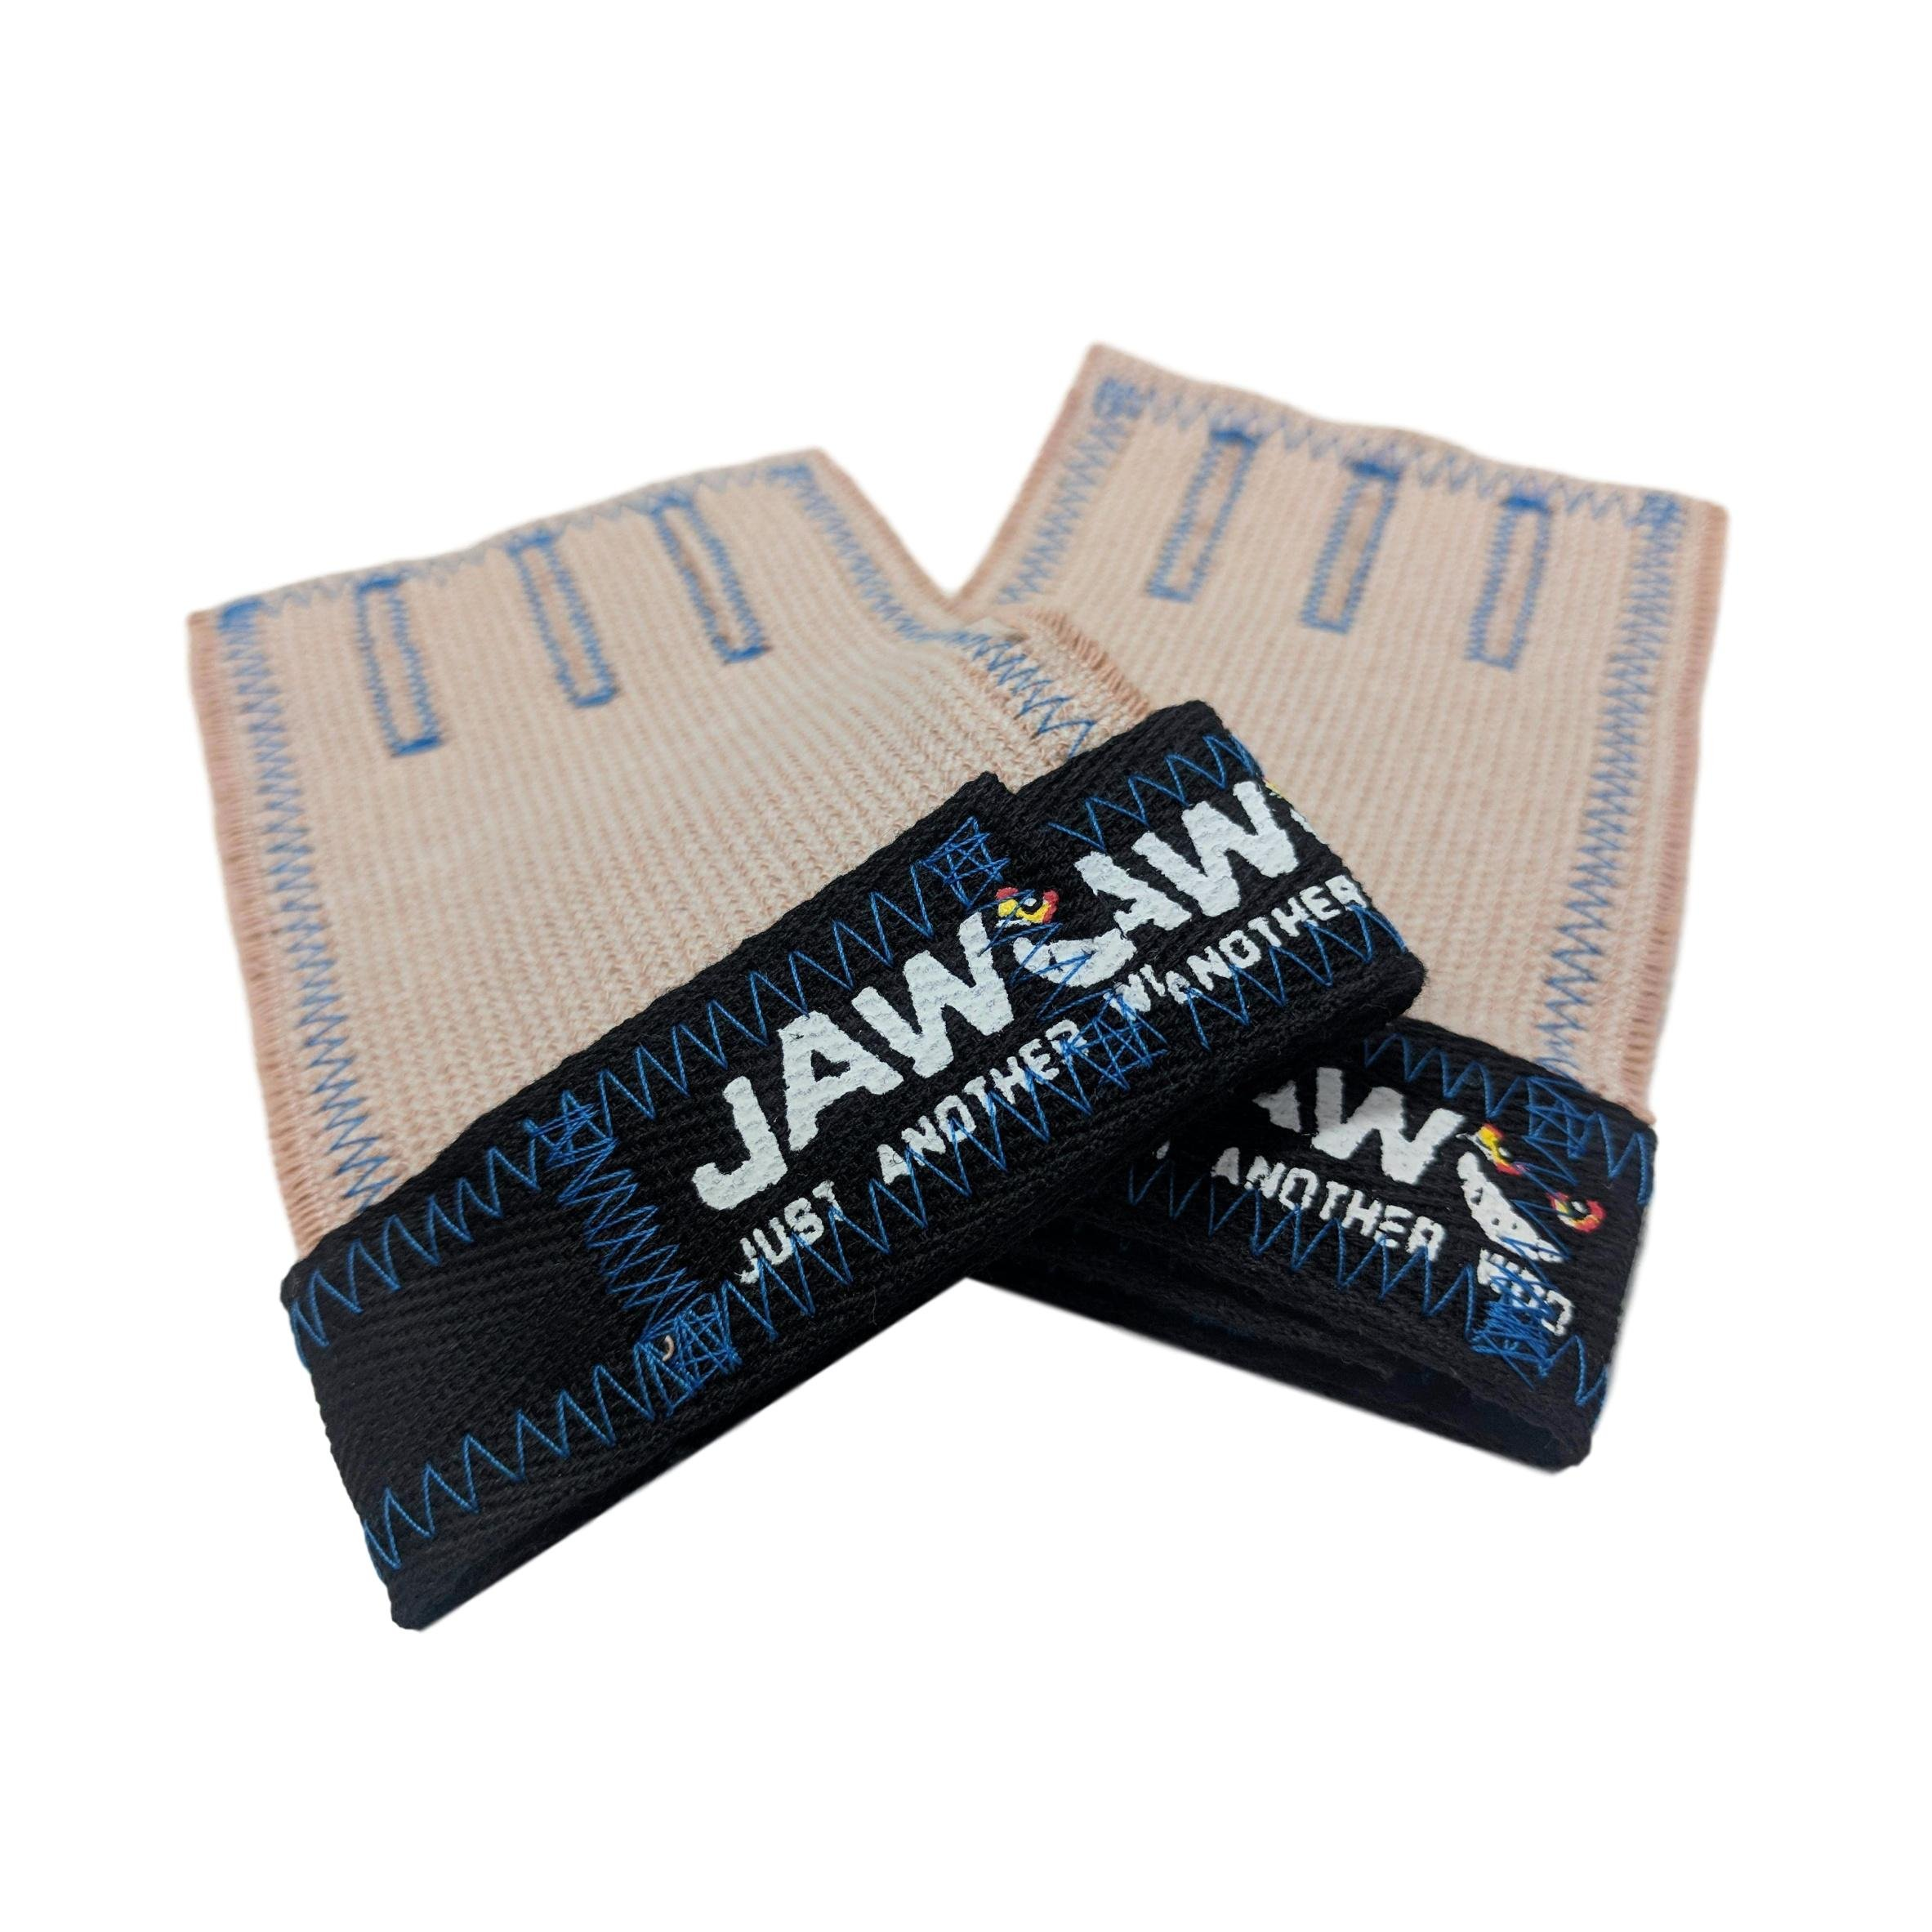 JAW Three's Hand Grips (Black, Small)